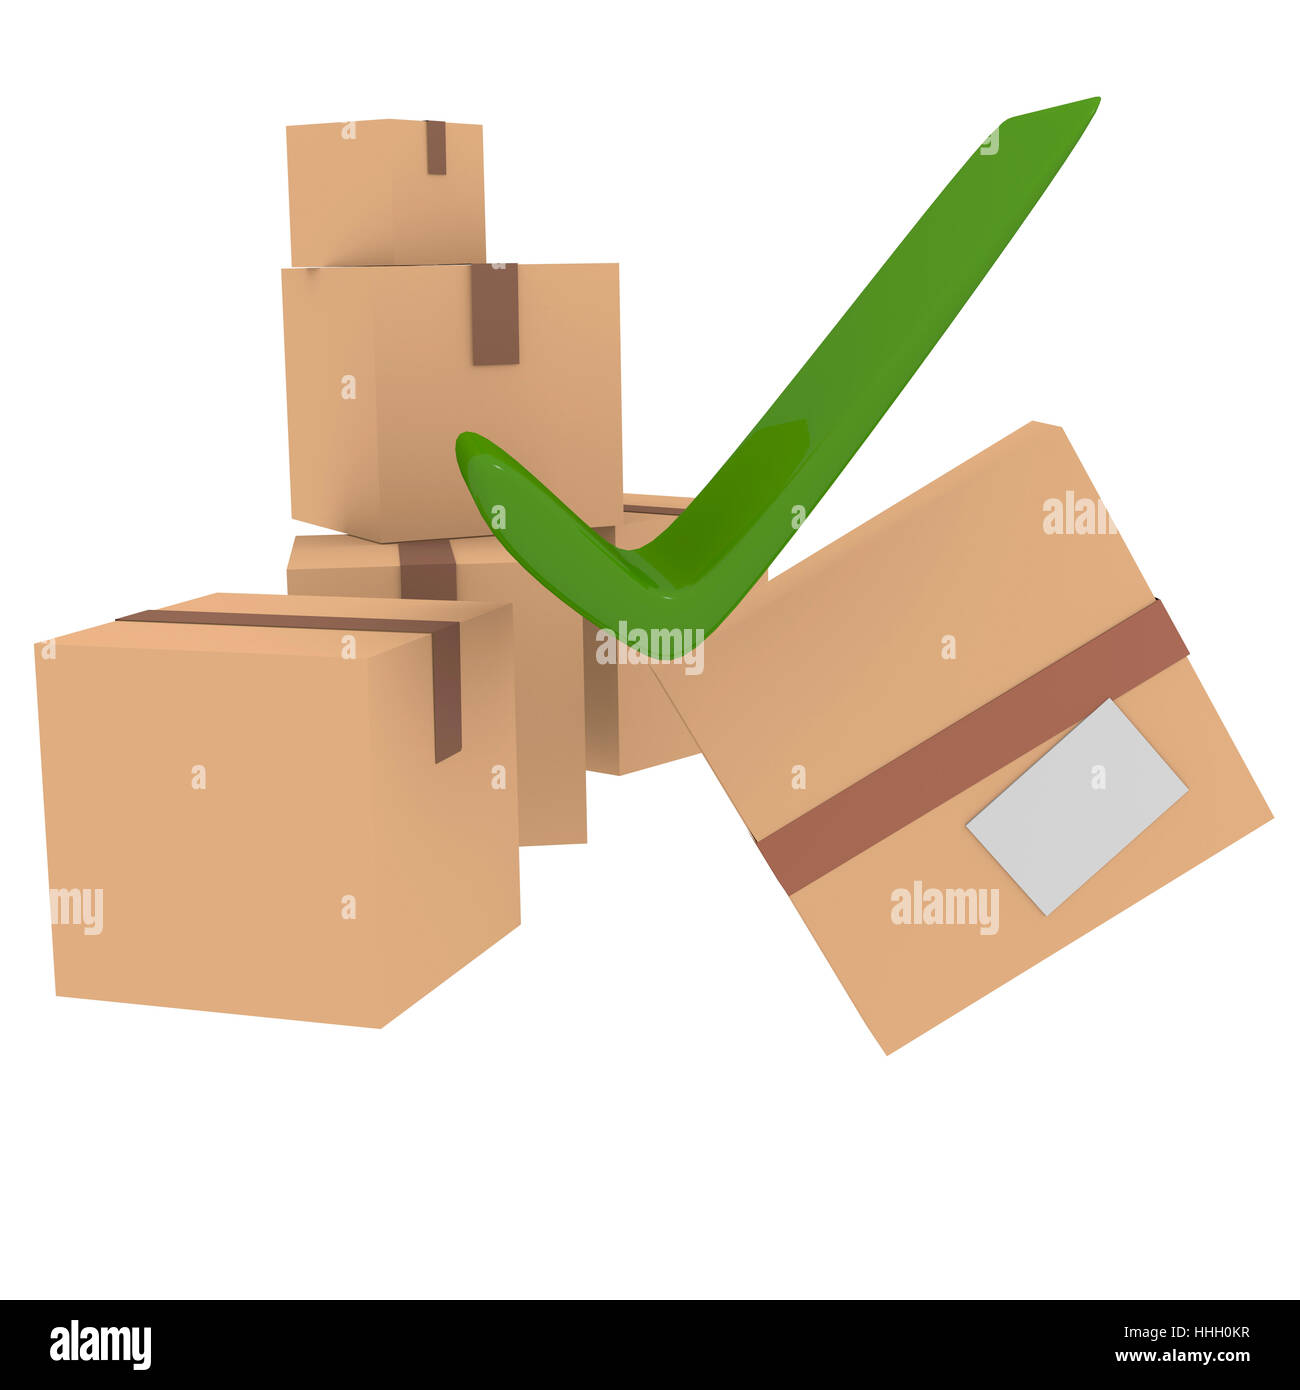 dispatch, parcel service, mail-order business, supply, package, packet, parcel, Stock Photo